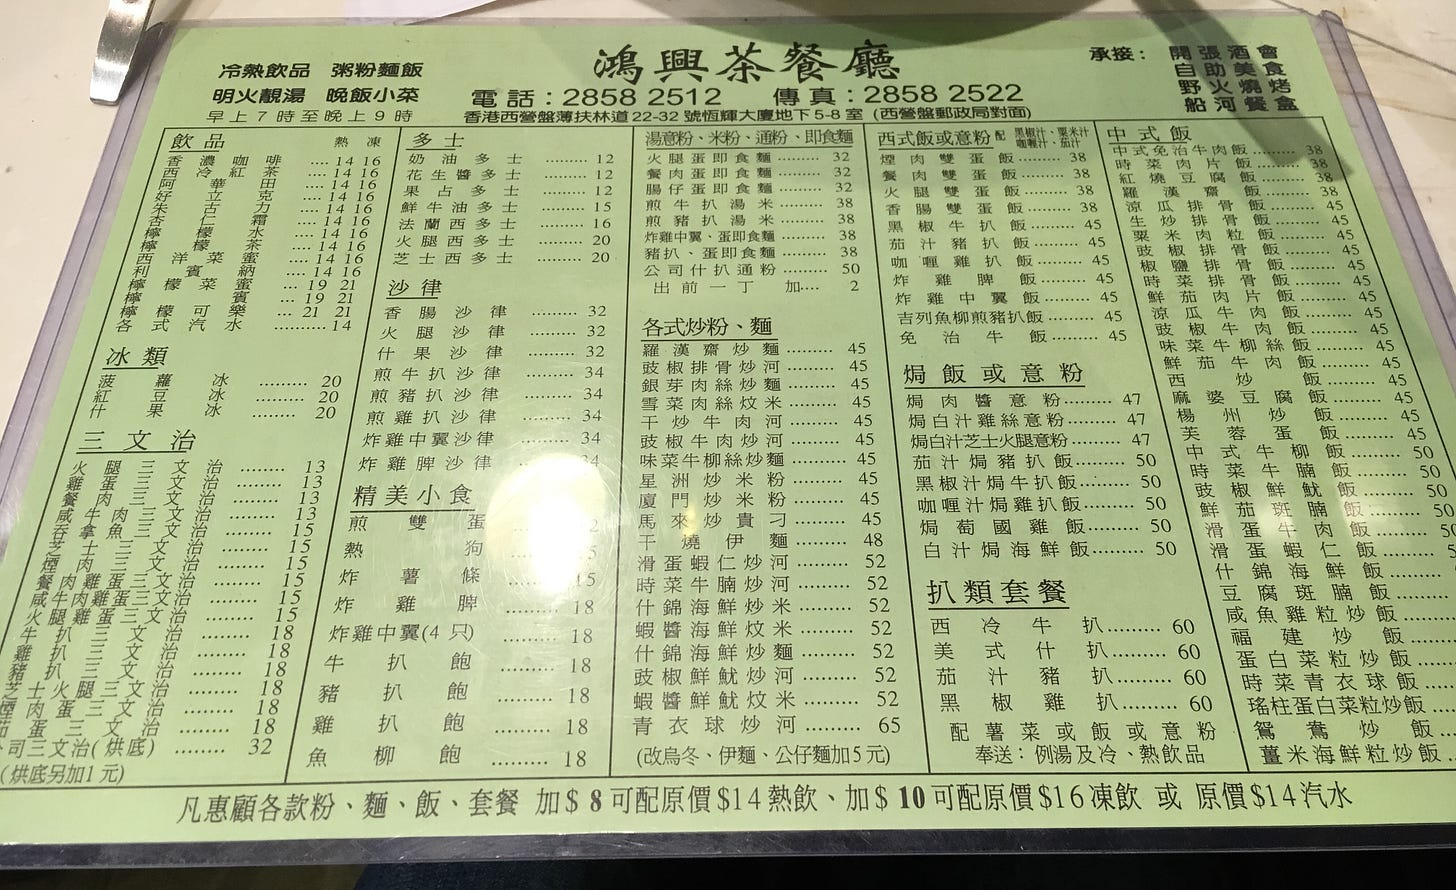 An image of a laminated menu of a Hong Kong Tea restaurant which also doubles as a placemat